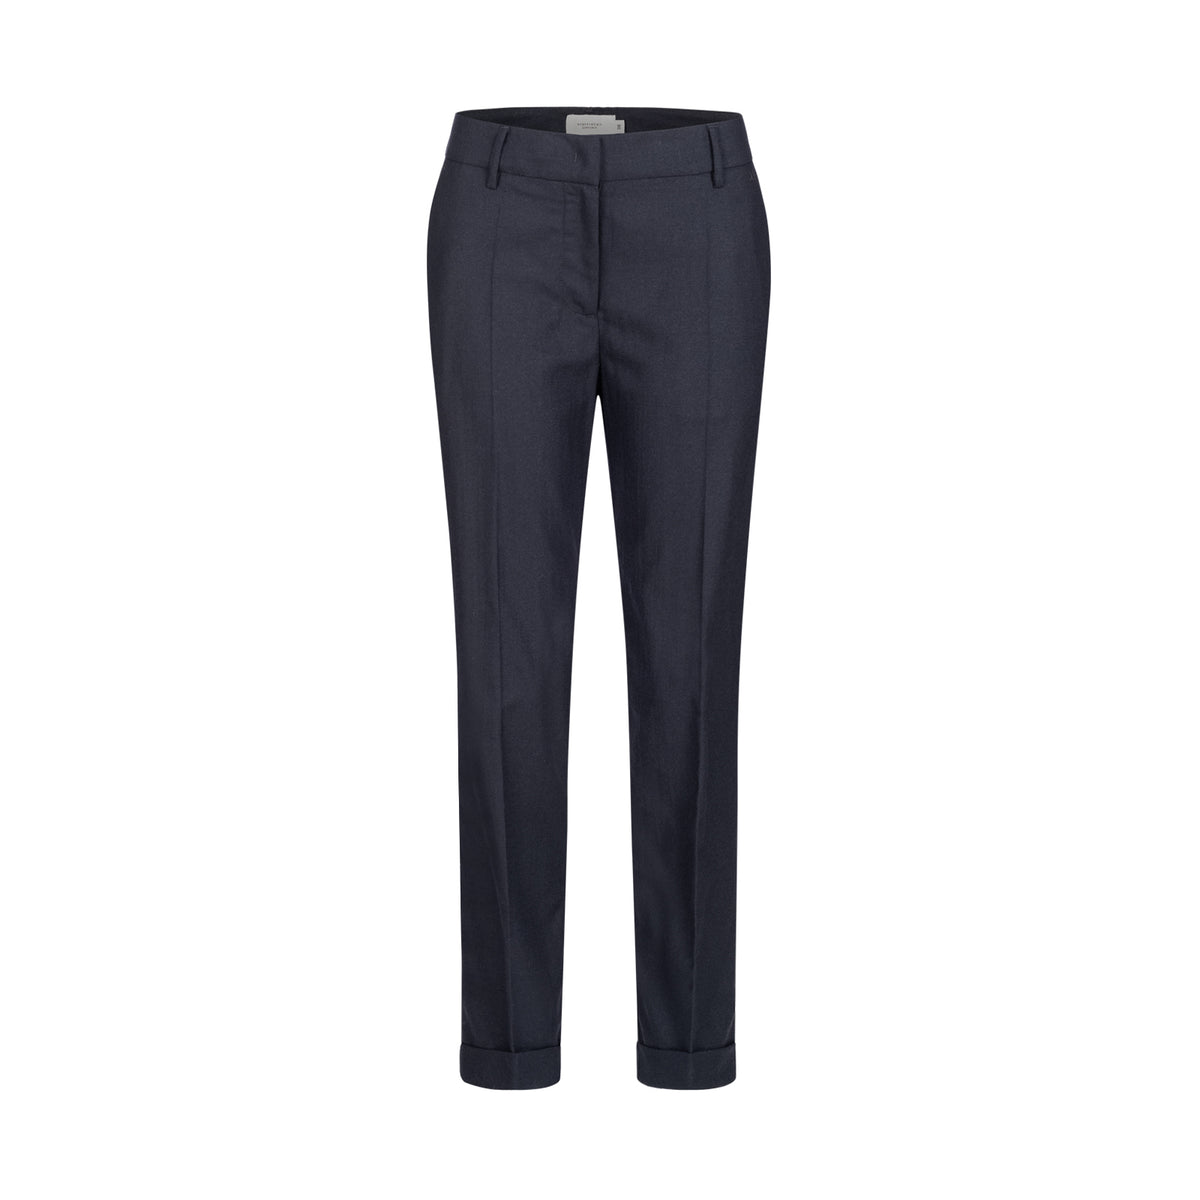 Tailored Wool Comfort Chinos